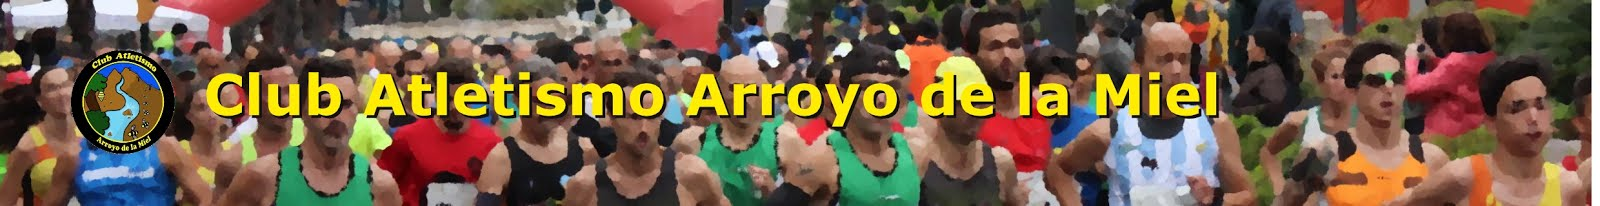 Club Atletismo Arroyo de la Miel